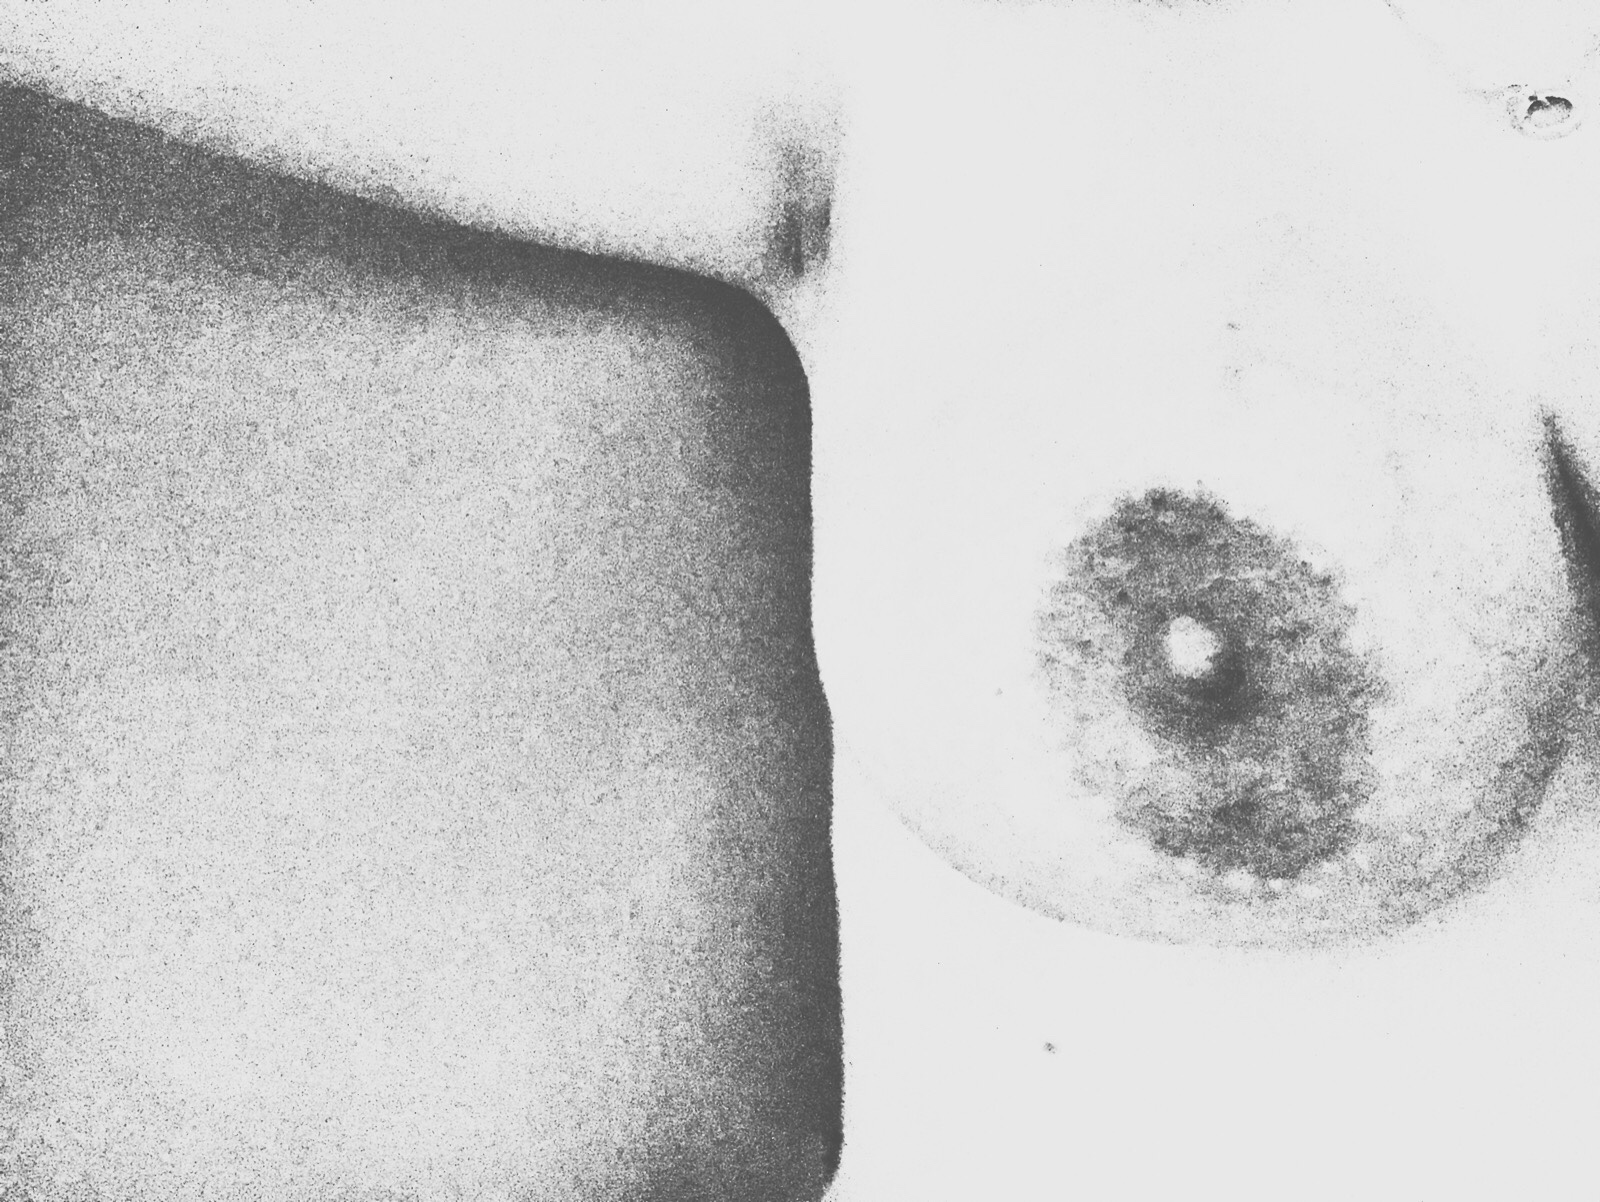 An image of my right breast with arm stretched out at right angles along the top of the image, washed out by a black and white filter